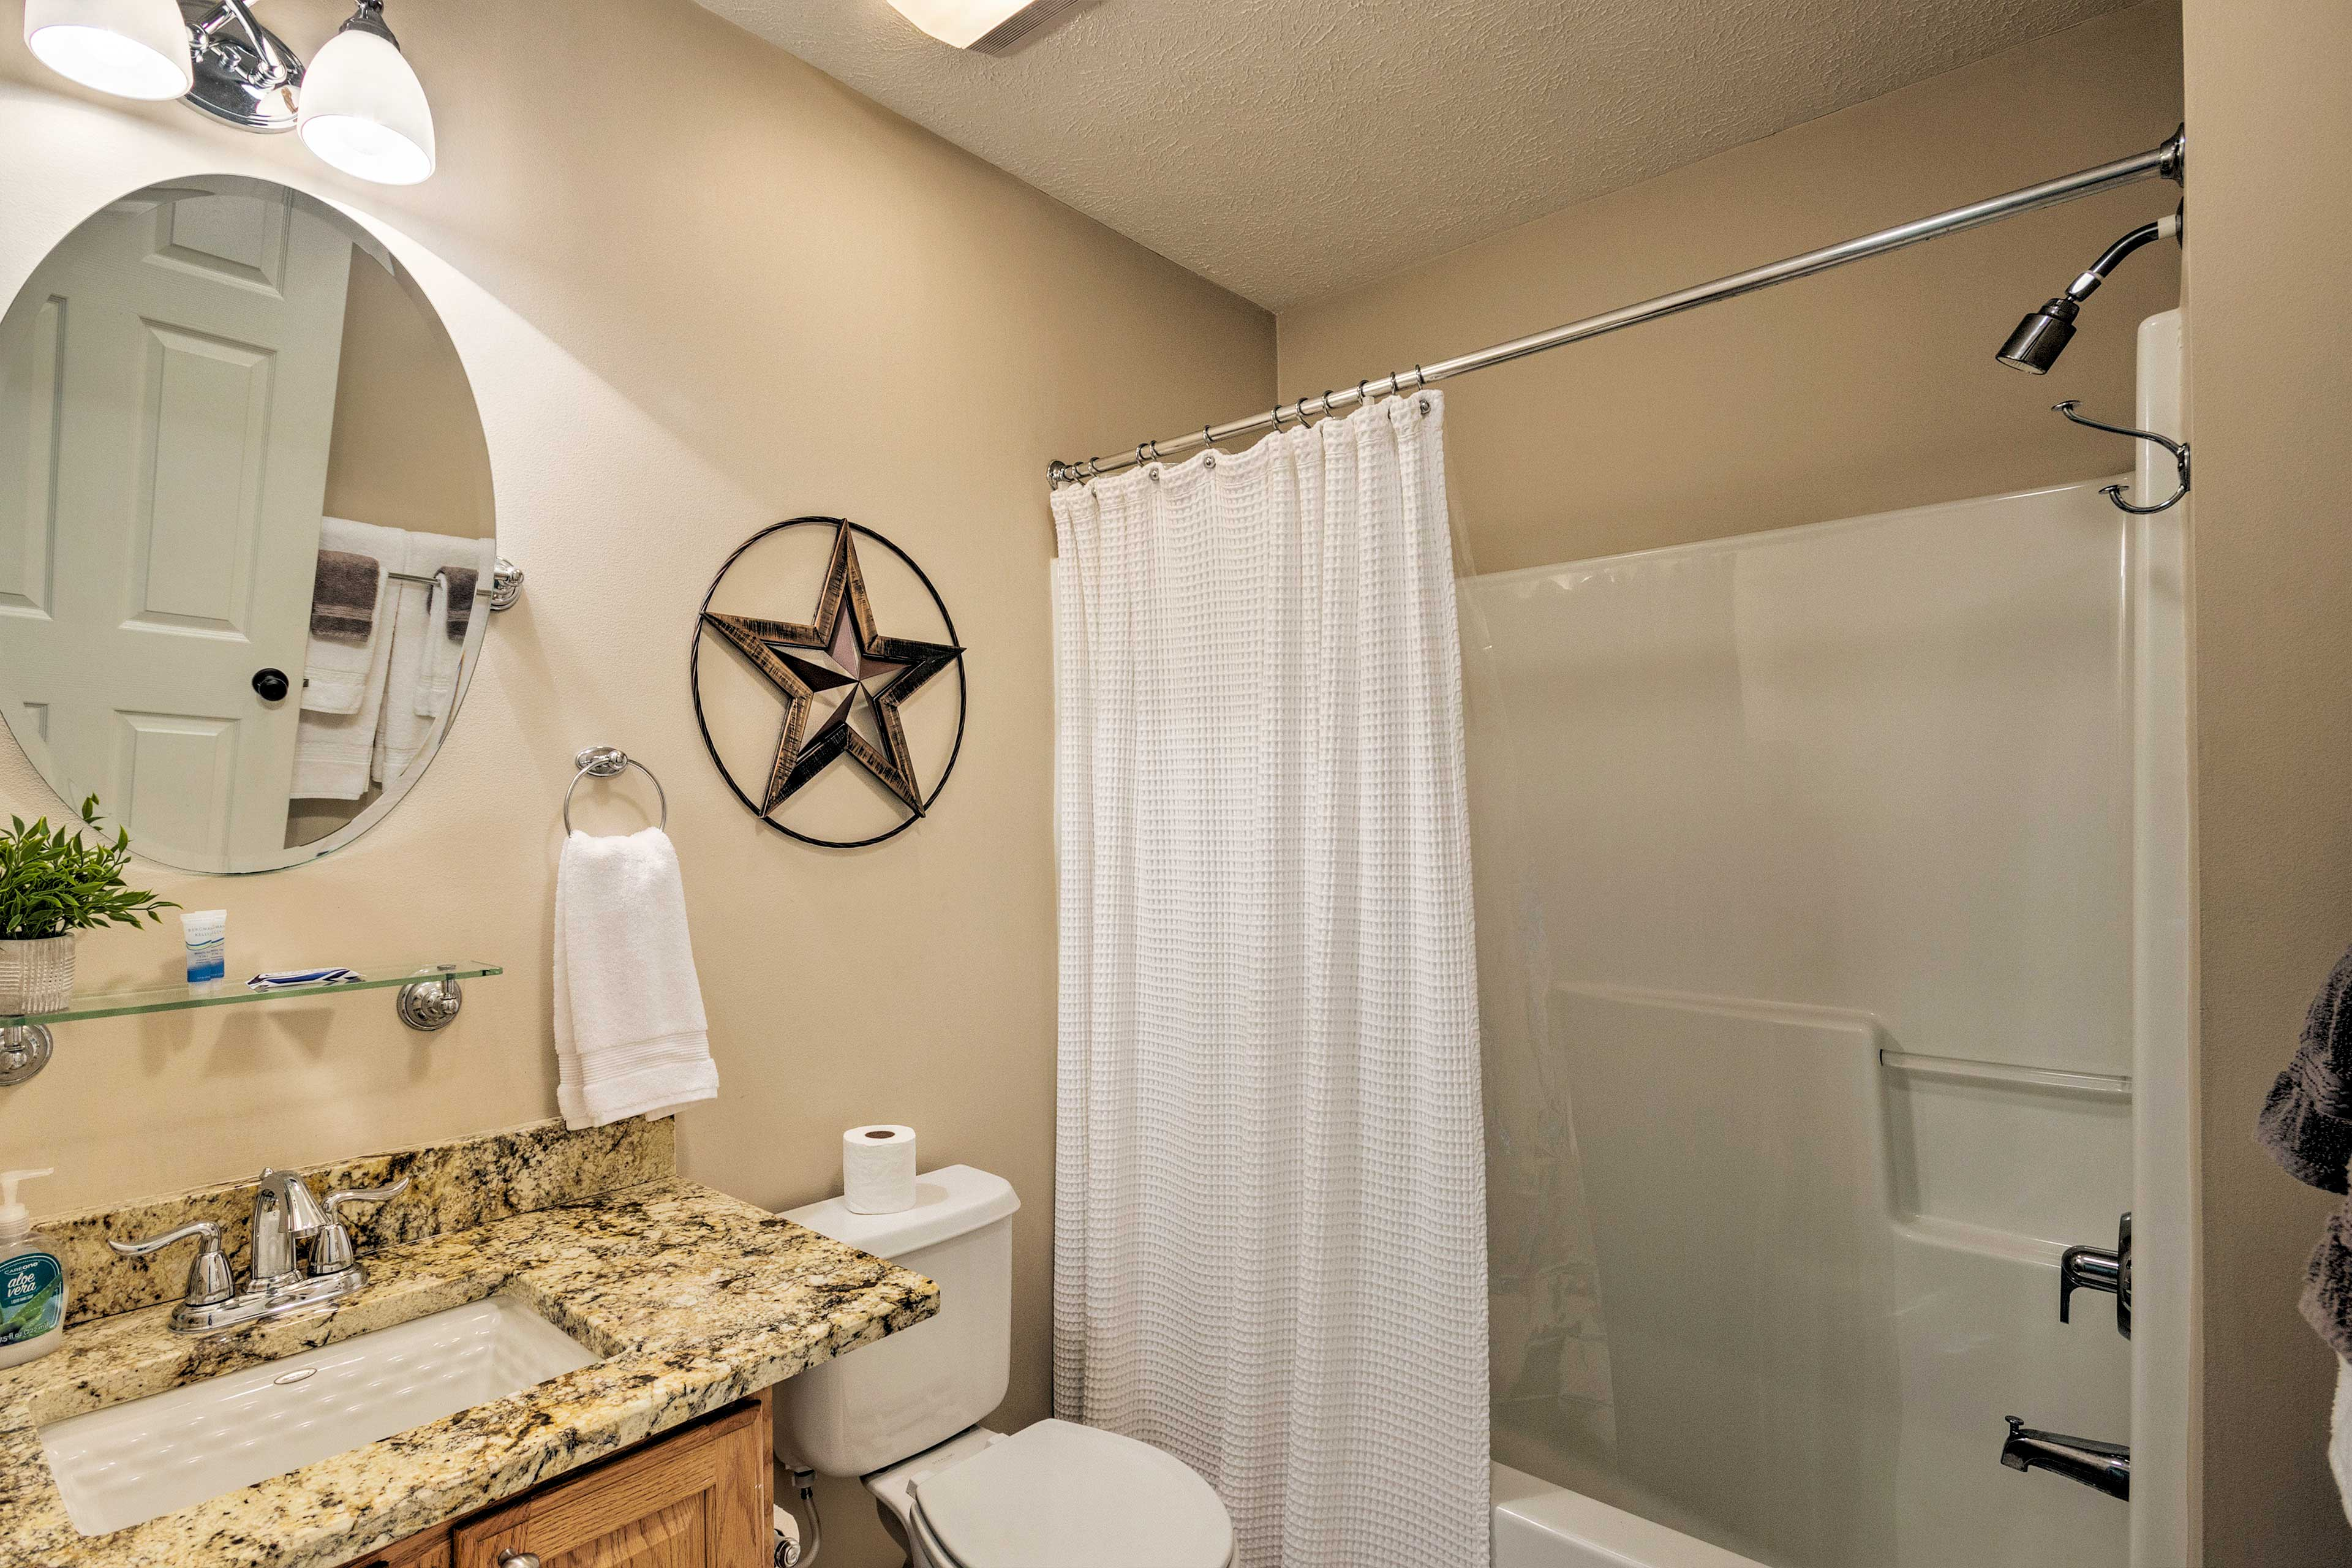 Rinse off in the shower/tub combo in this second bathroom.